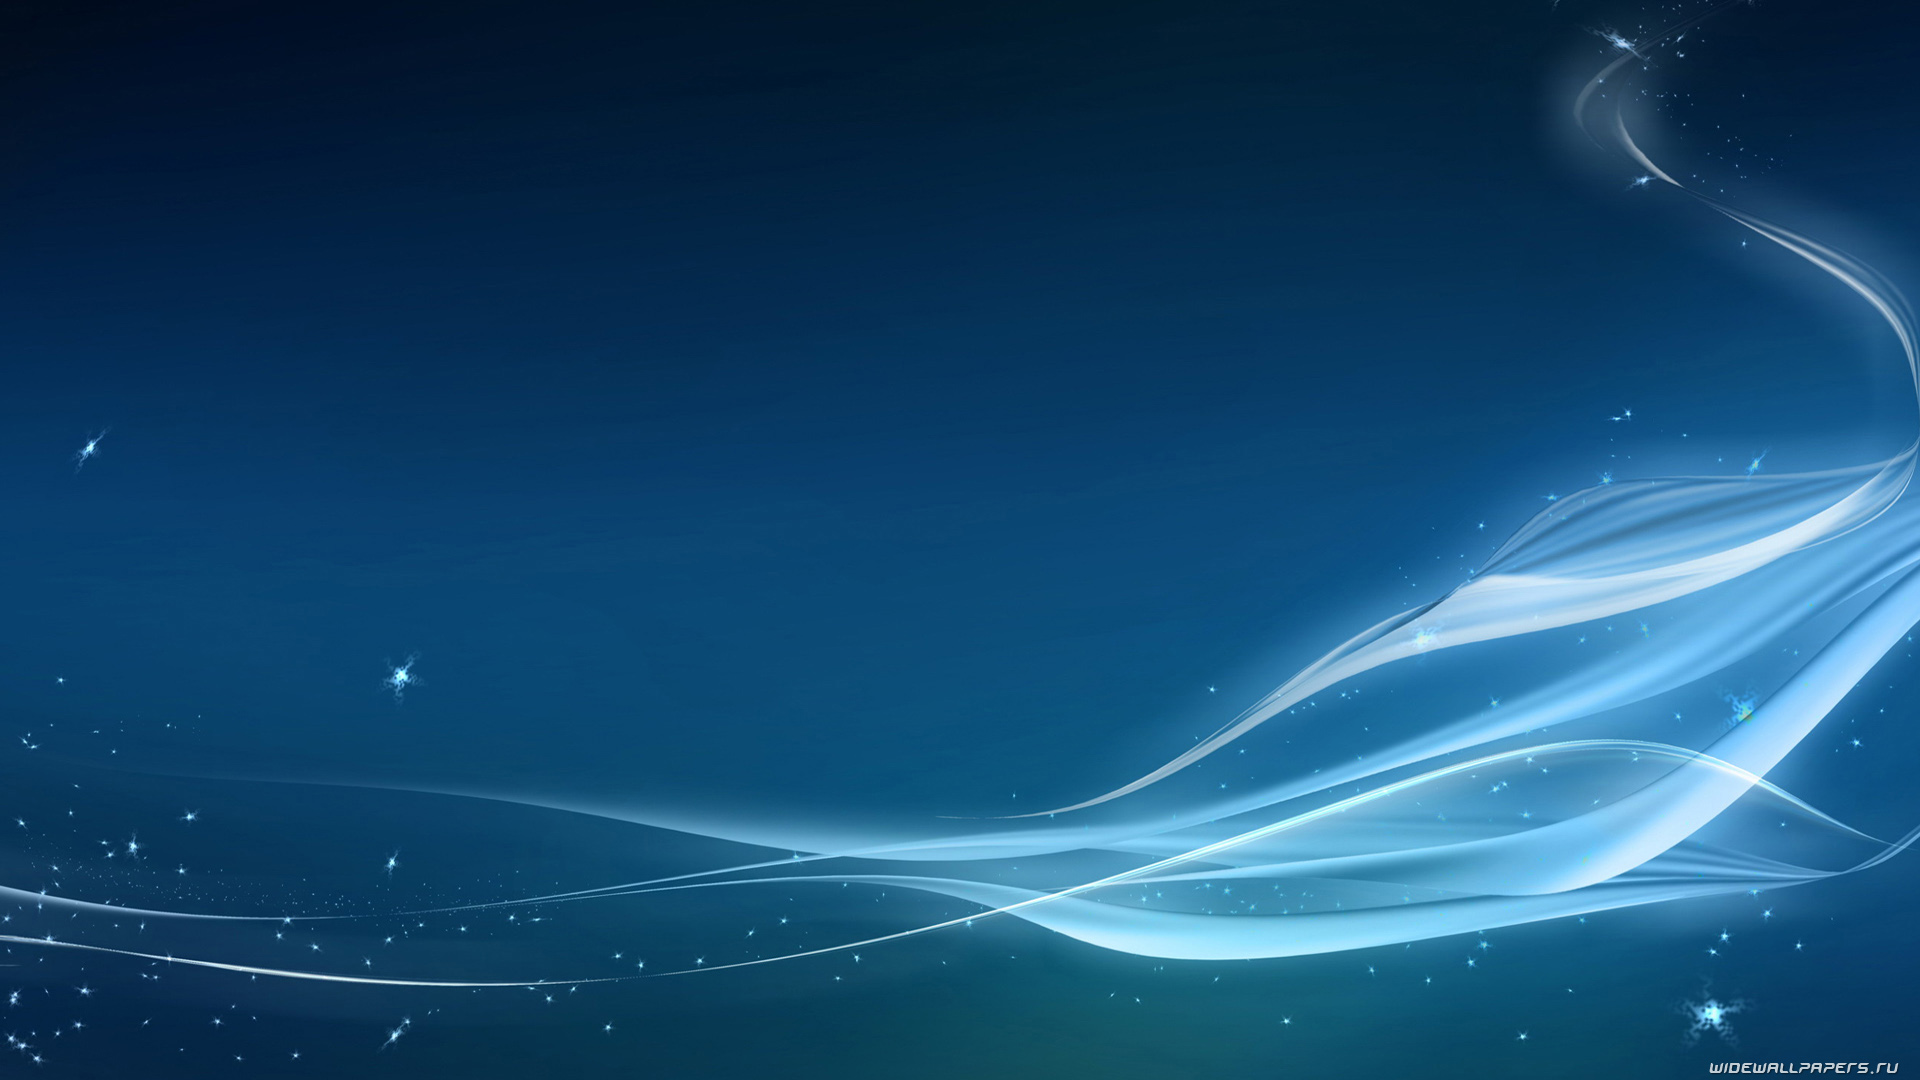 Blue Abstract Background Wallpaper Cool Wallpapers Hd